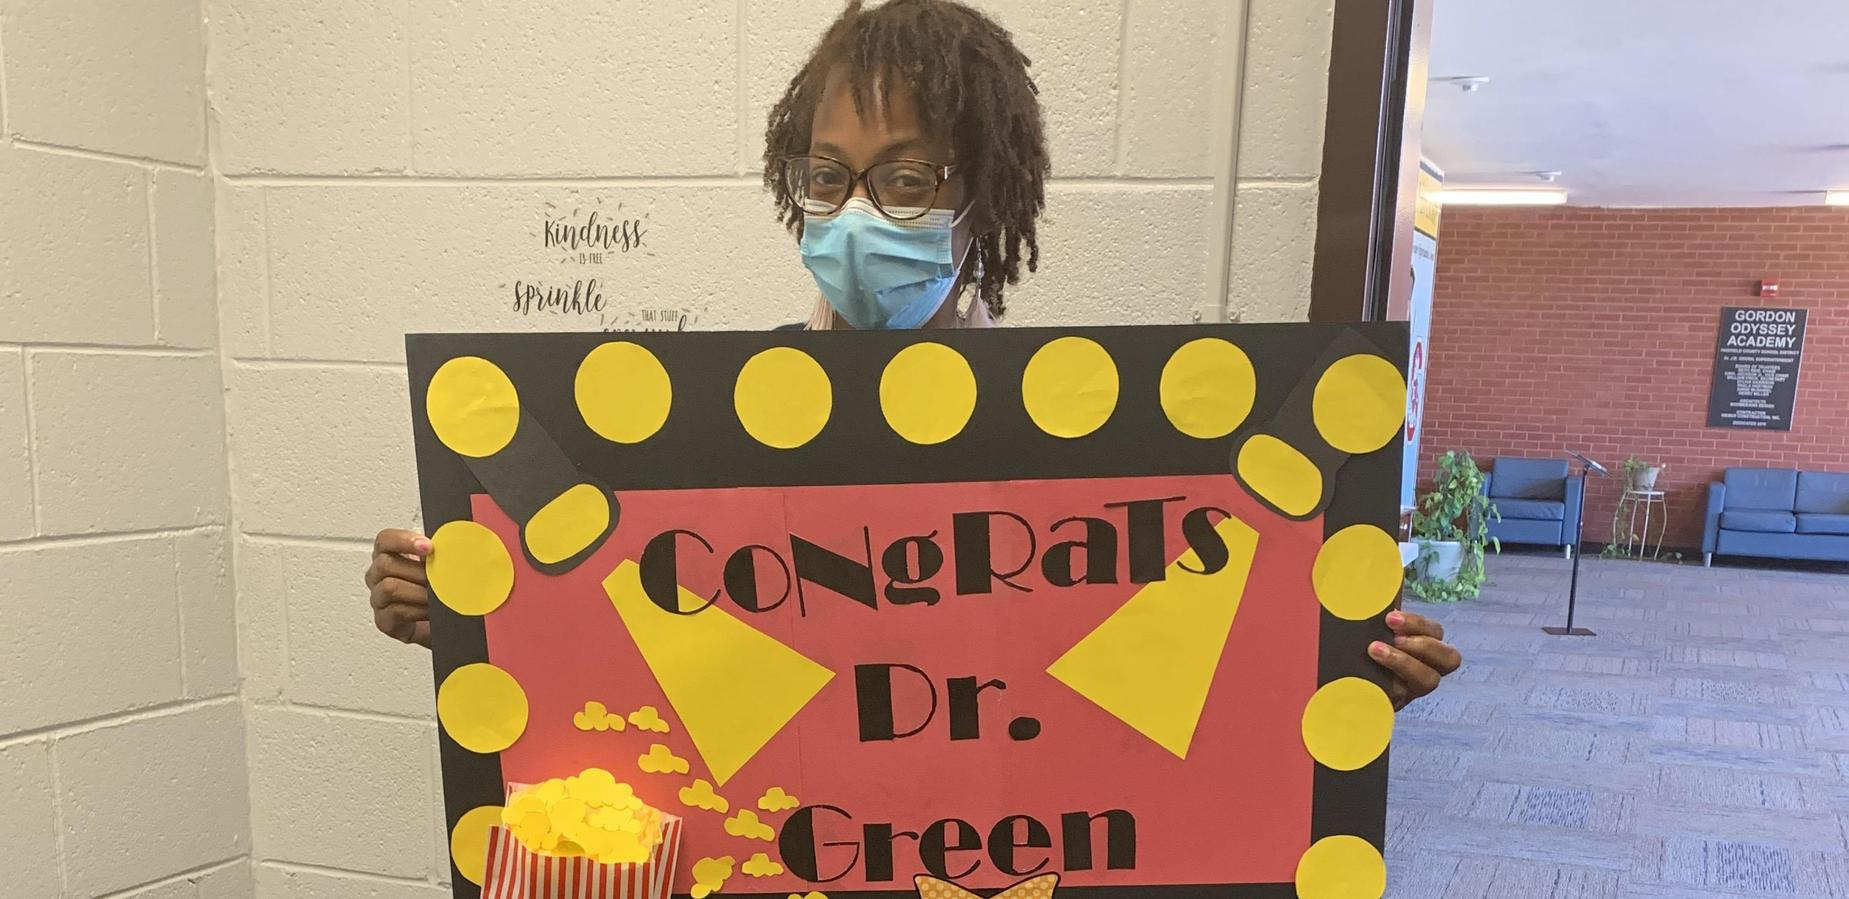 Ms. Guinyard holding her creative poster honor Dr. Green